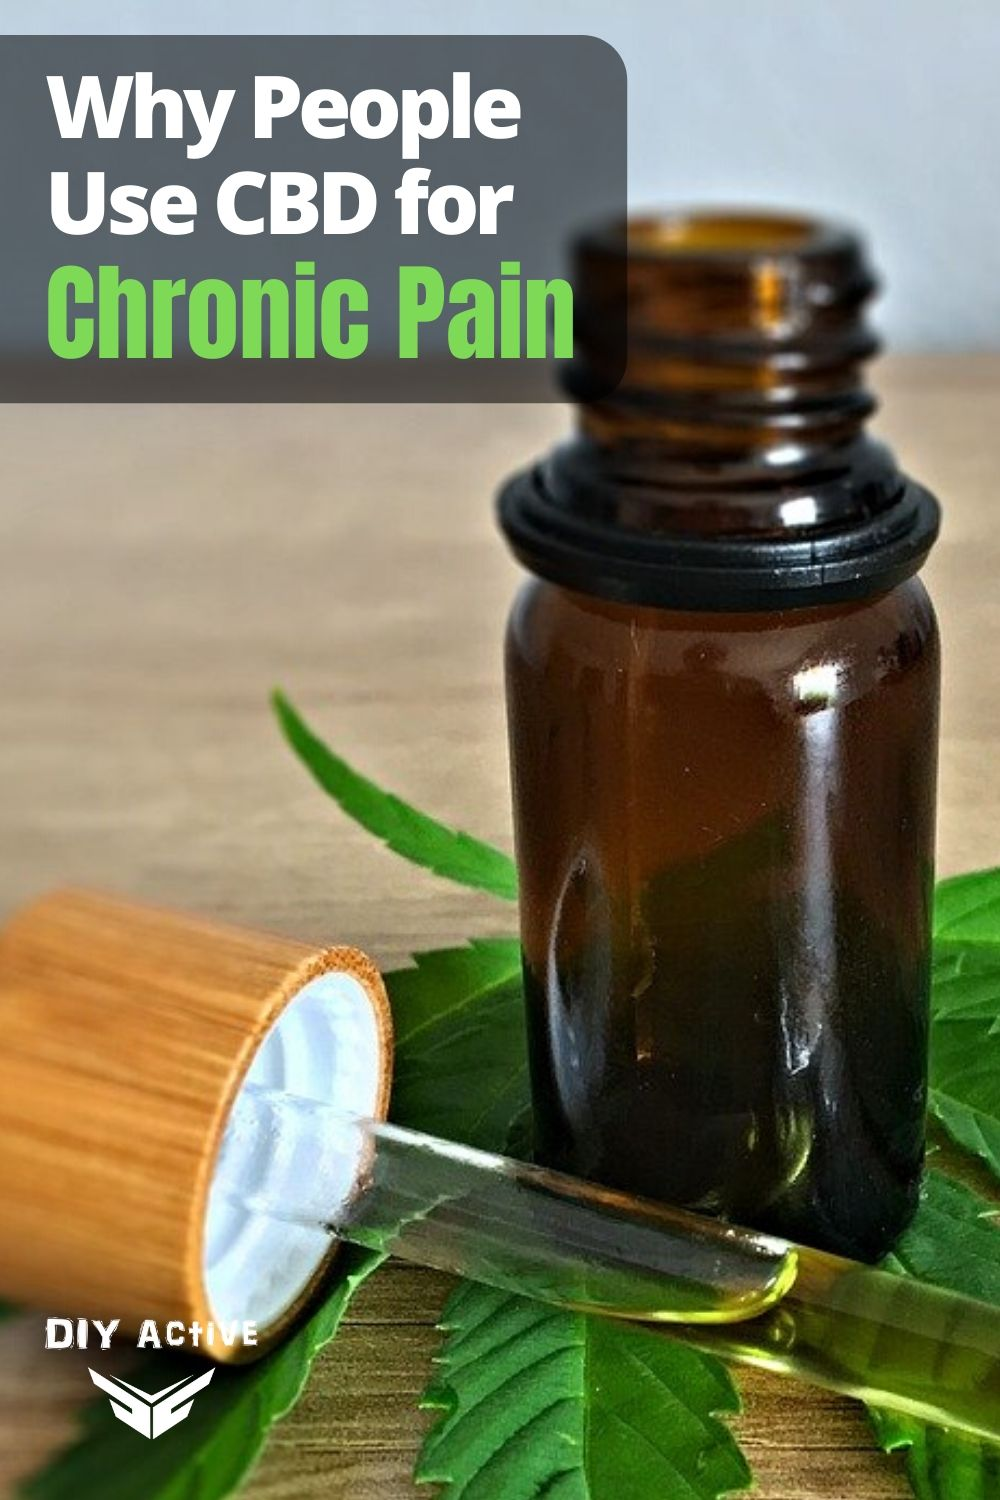 Why People Use CBD for Chronic Pain